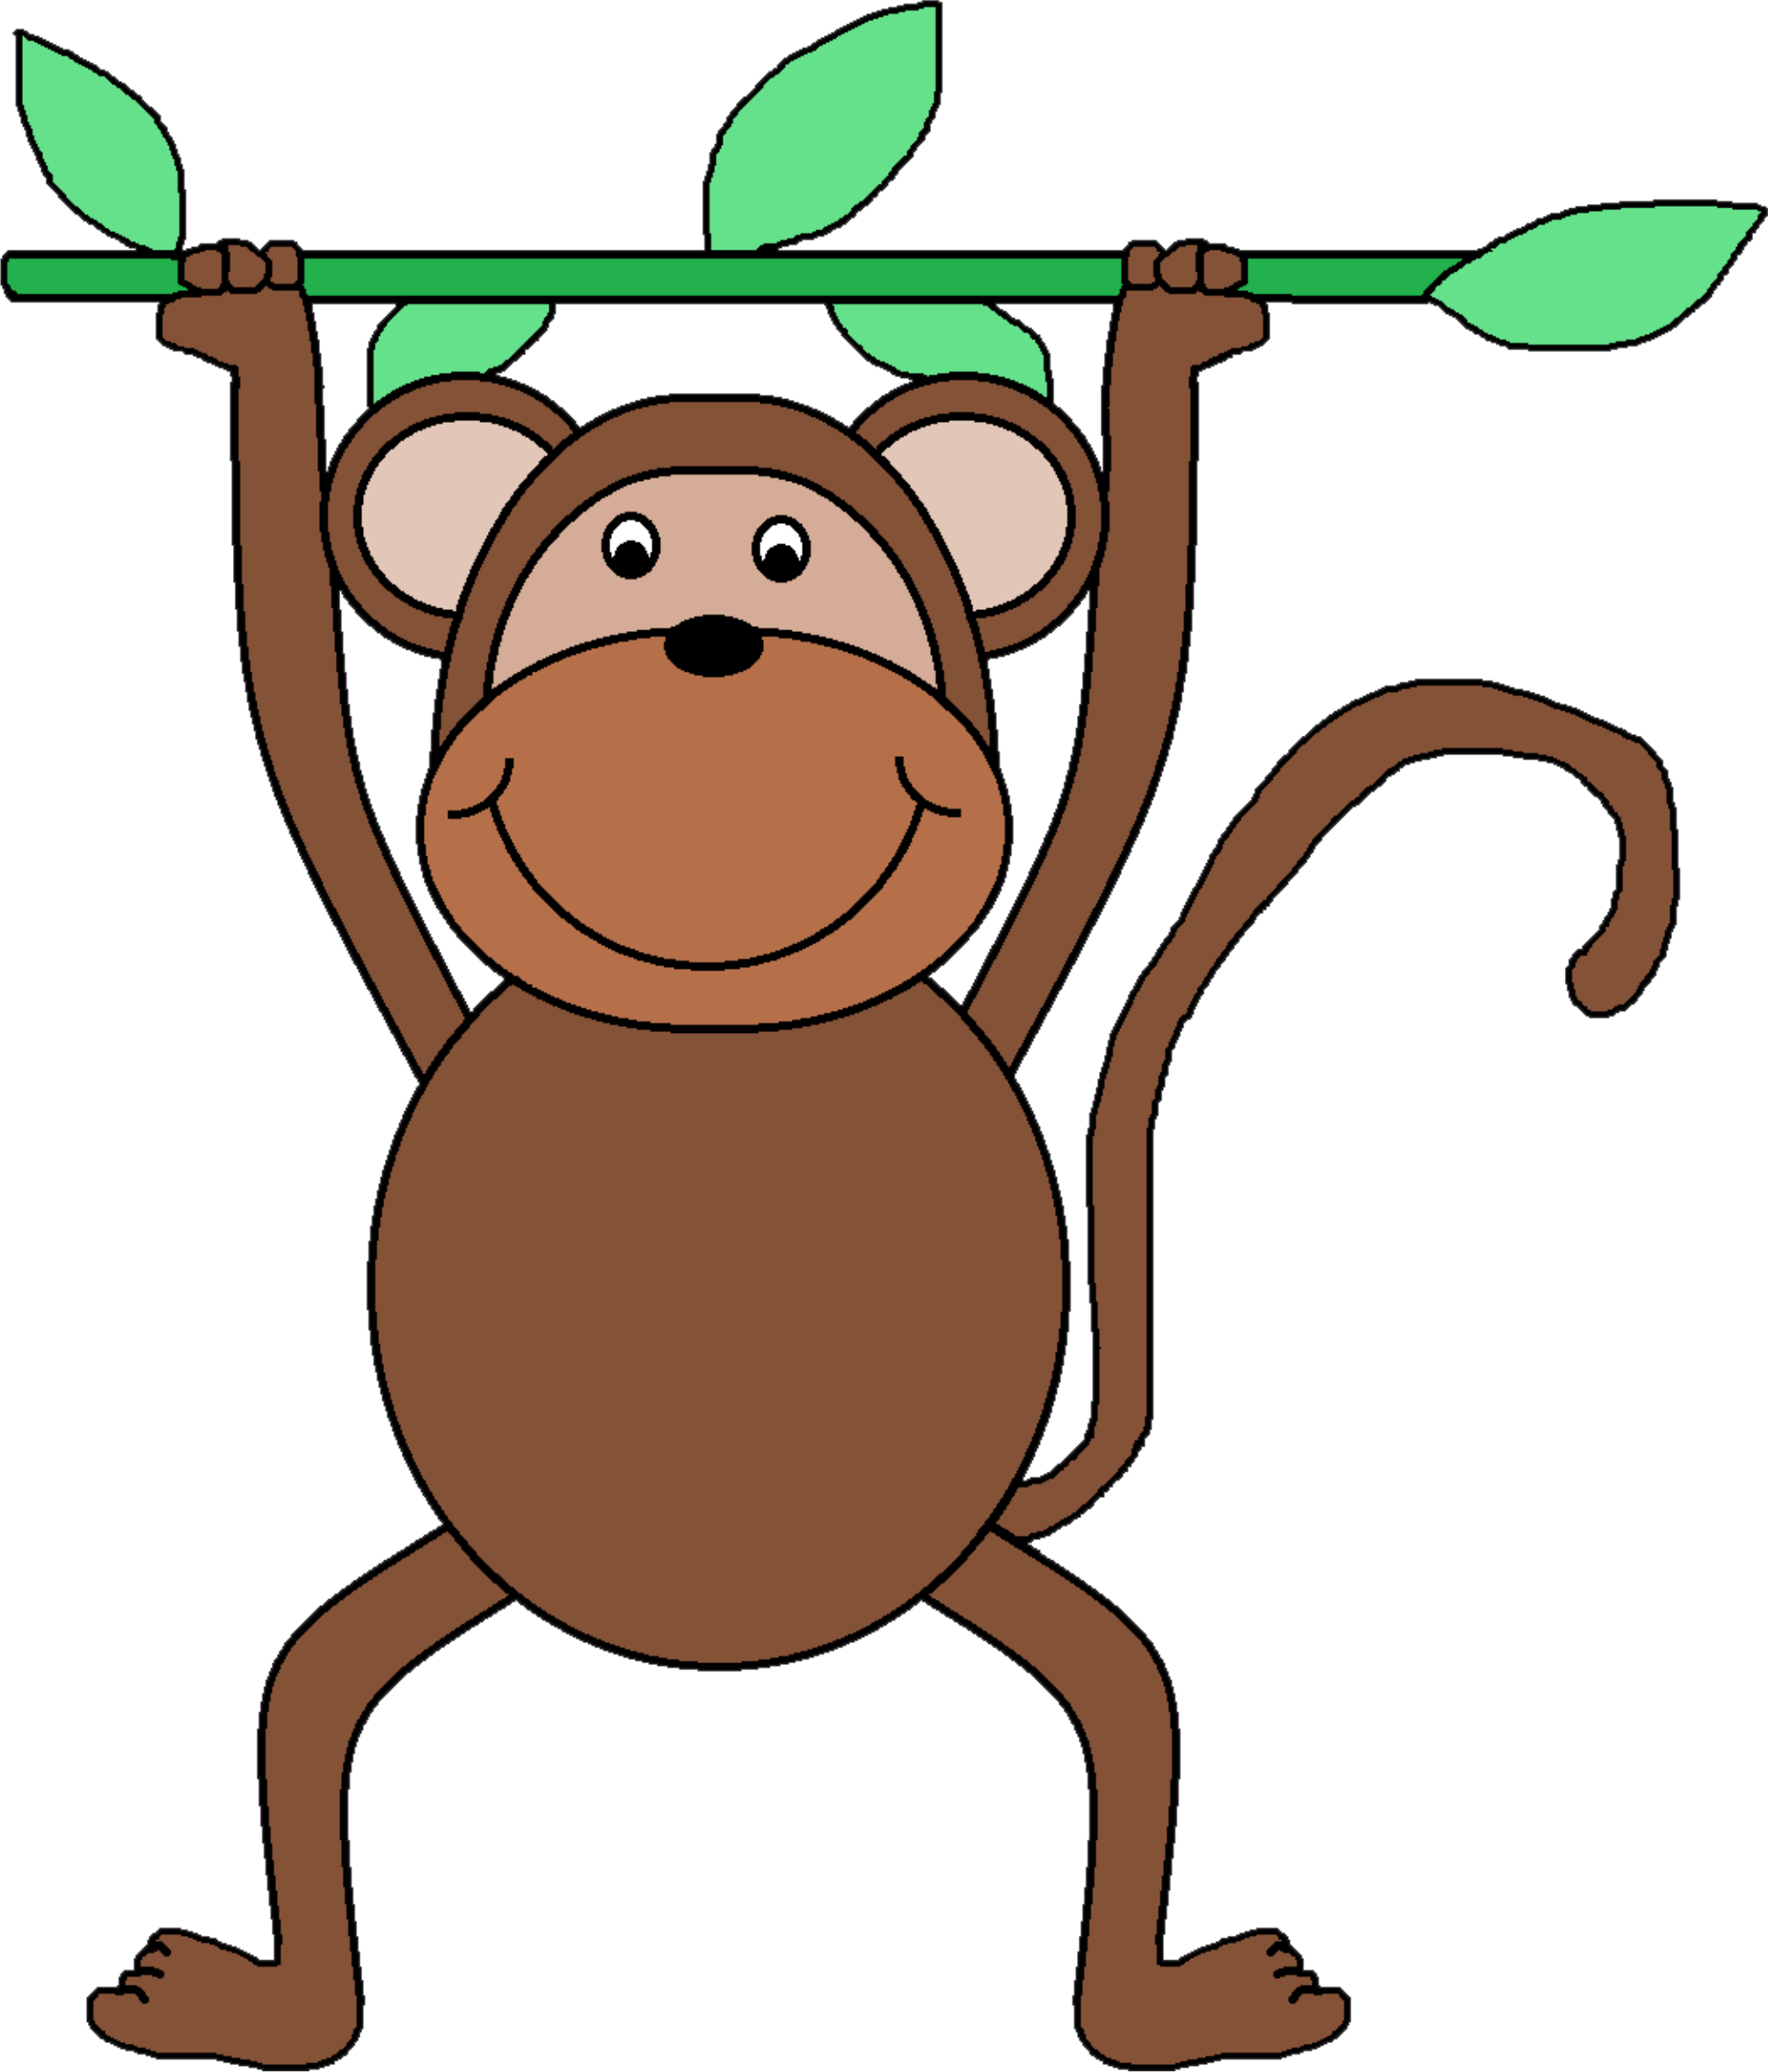 clipart monkey clip art rh openclipart org clipart of monkeys in trees clipart of monkey cartoon